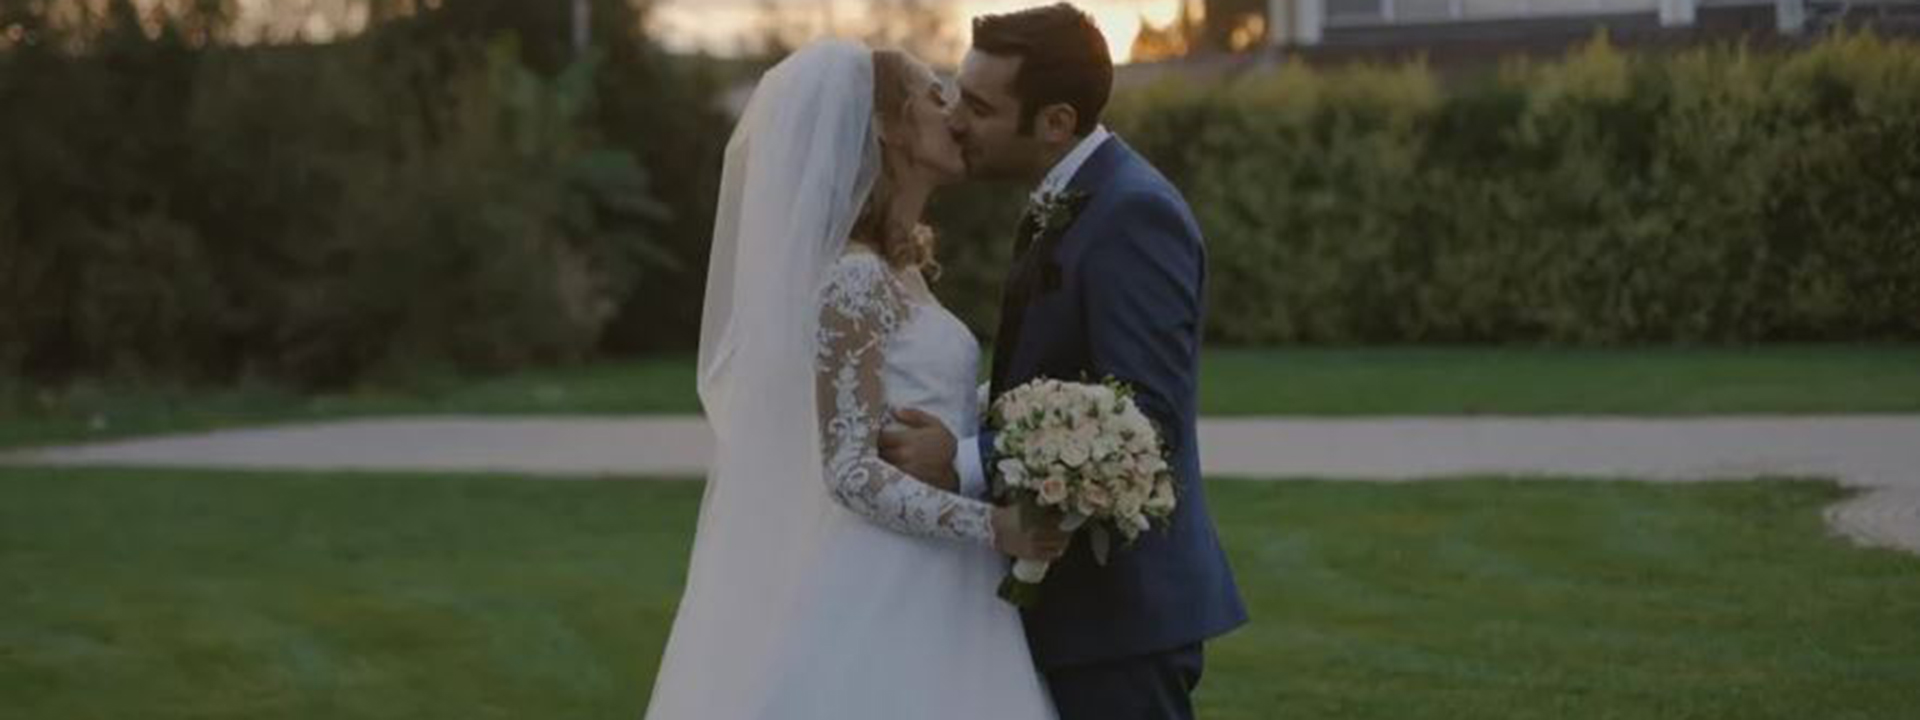 Antoniu & Patricia // The Most Beautiful Day // 10 octombrie 2020